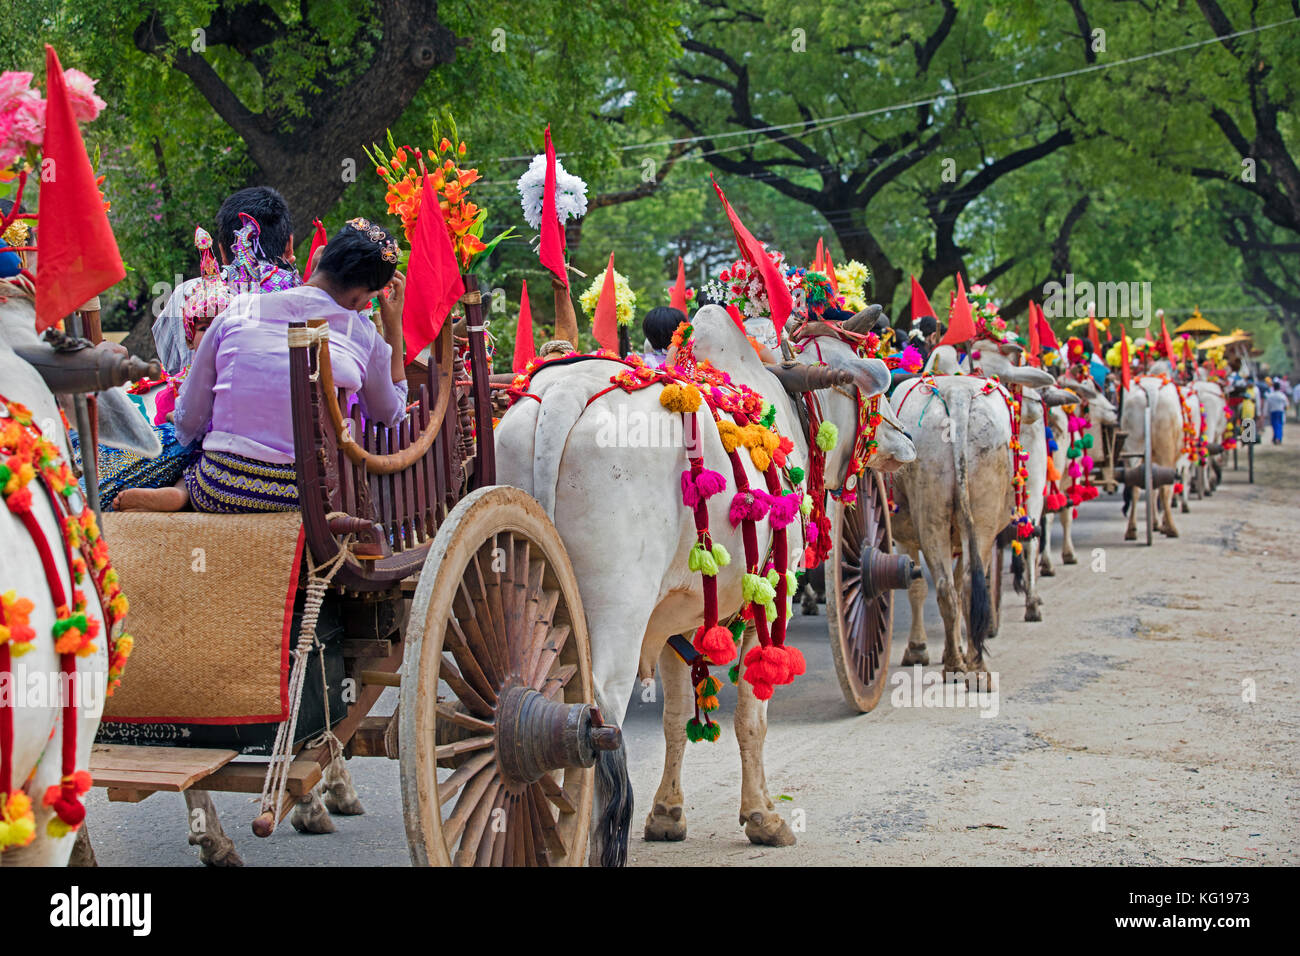 Traditional parade for Burmese children becoming a novice monks in the city Bagan / Pagan, Mandalay Region, Myanmar - Stock Image